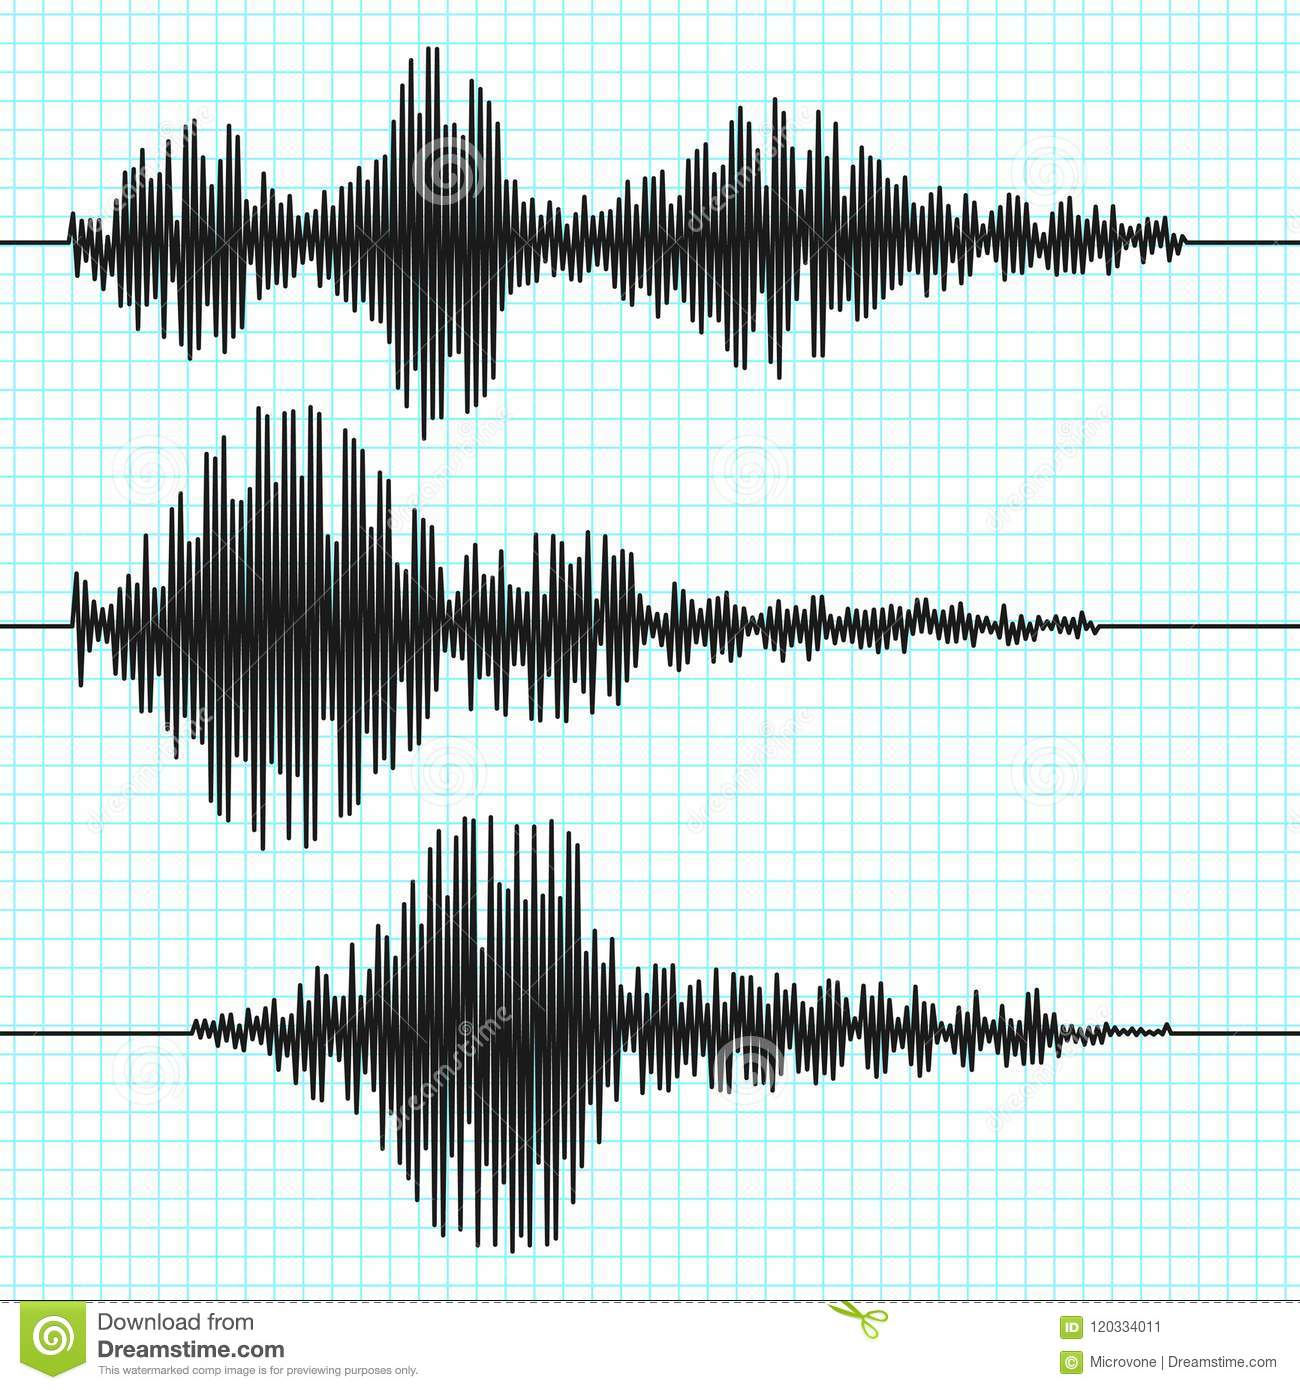 Frequency Seismograph Waves Seismogram Earthquake Graphs